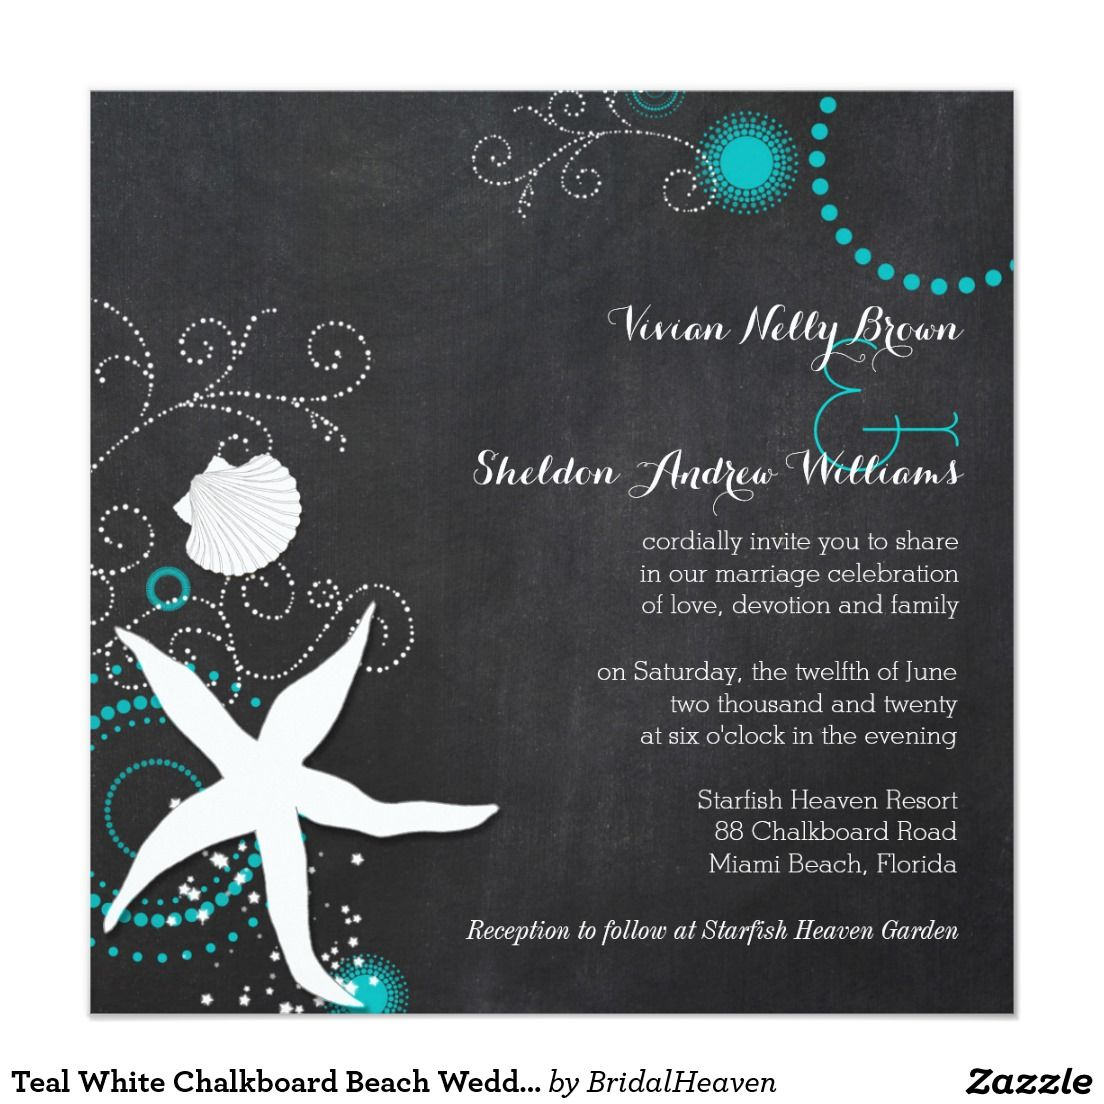 Teal White Chalkboard Beach Wedding Card Beach Wedding Invitations